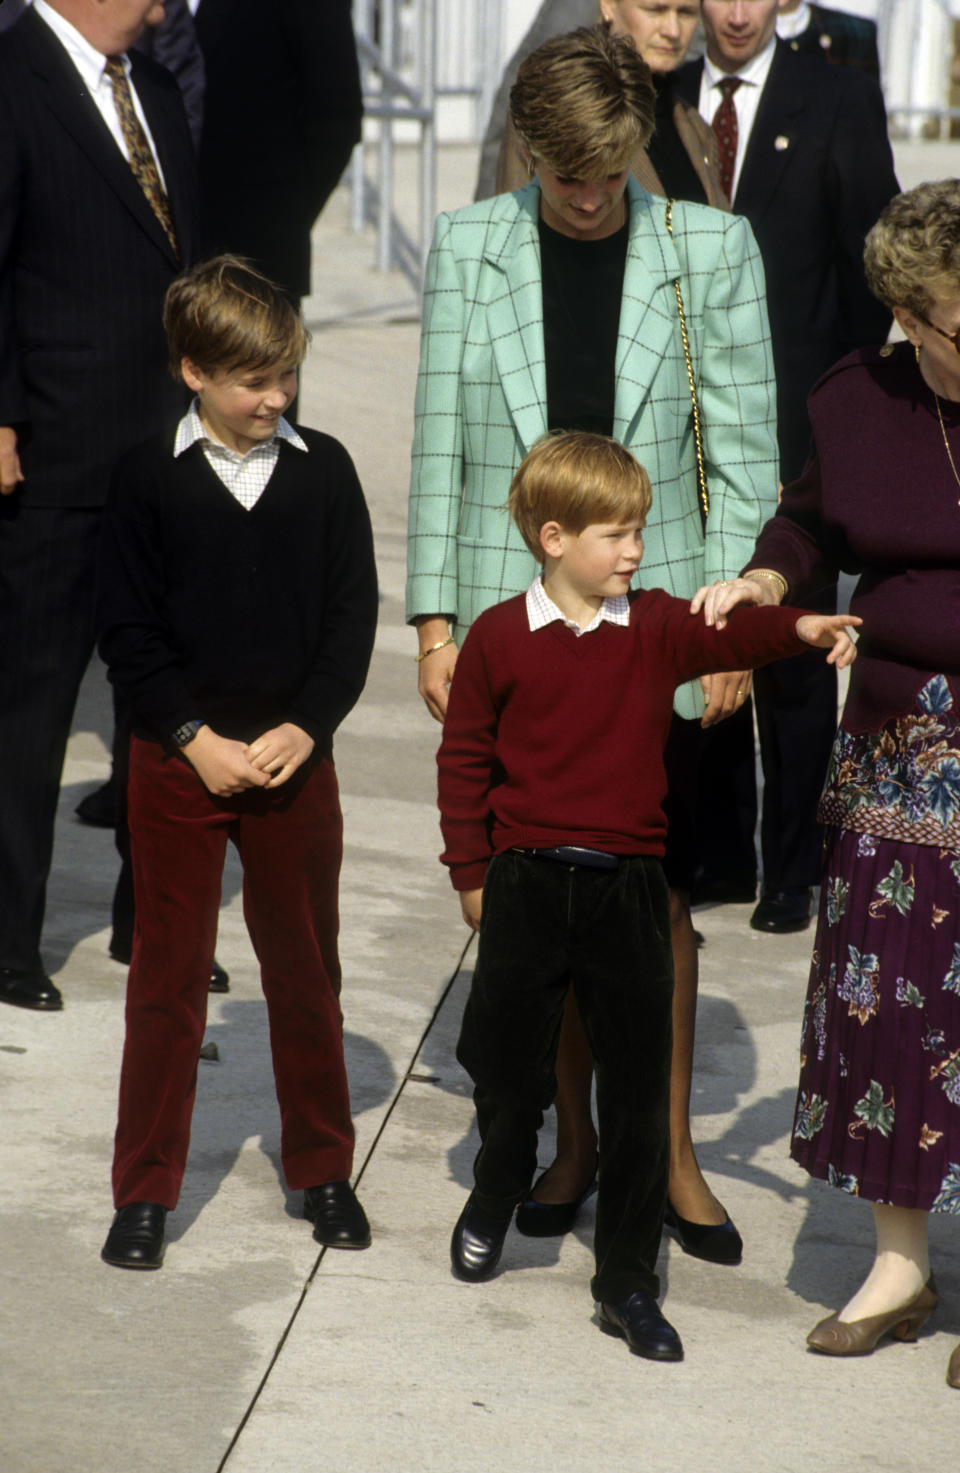 NIAGARA, CANADA - OCTOBER 28:  Diana, Princess of Wales, Prince William and Prince Harry meet the public during a visit to visit to Niagara  on October 28, 1991 in Niagara, Canada.  (Photo by Anwar Hussein/Getty Images)